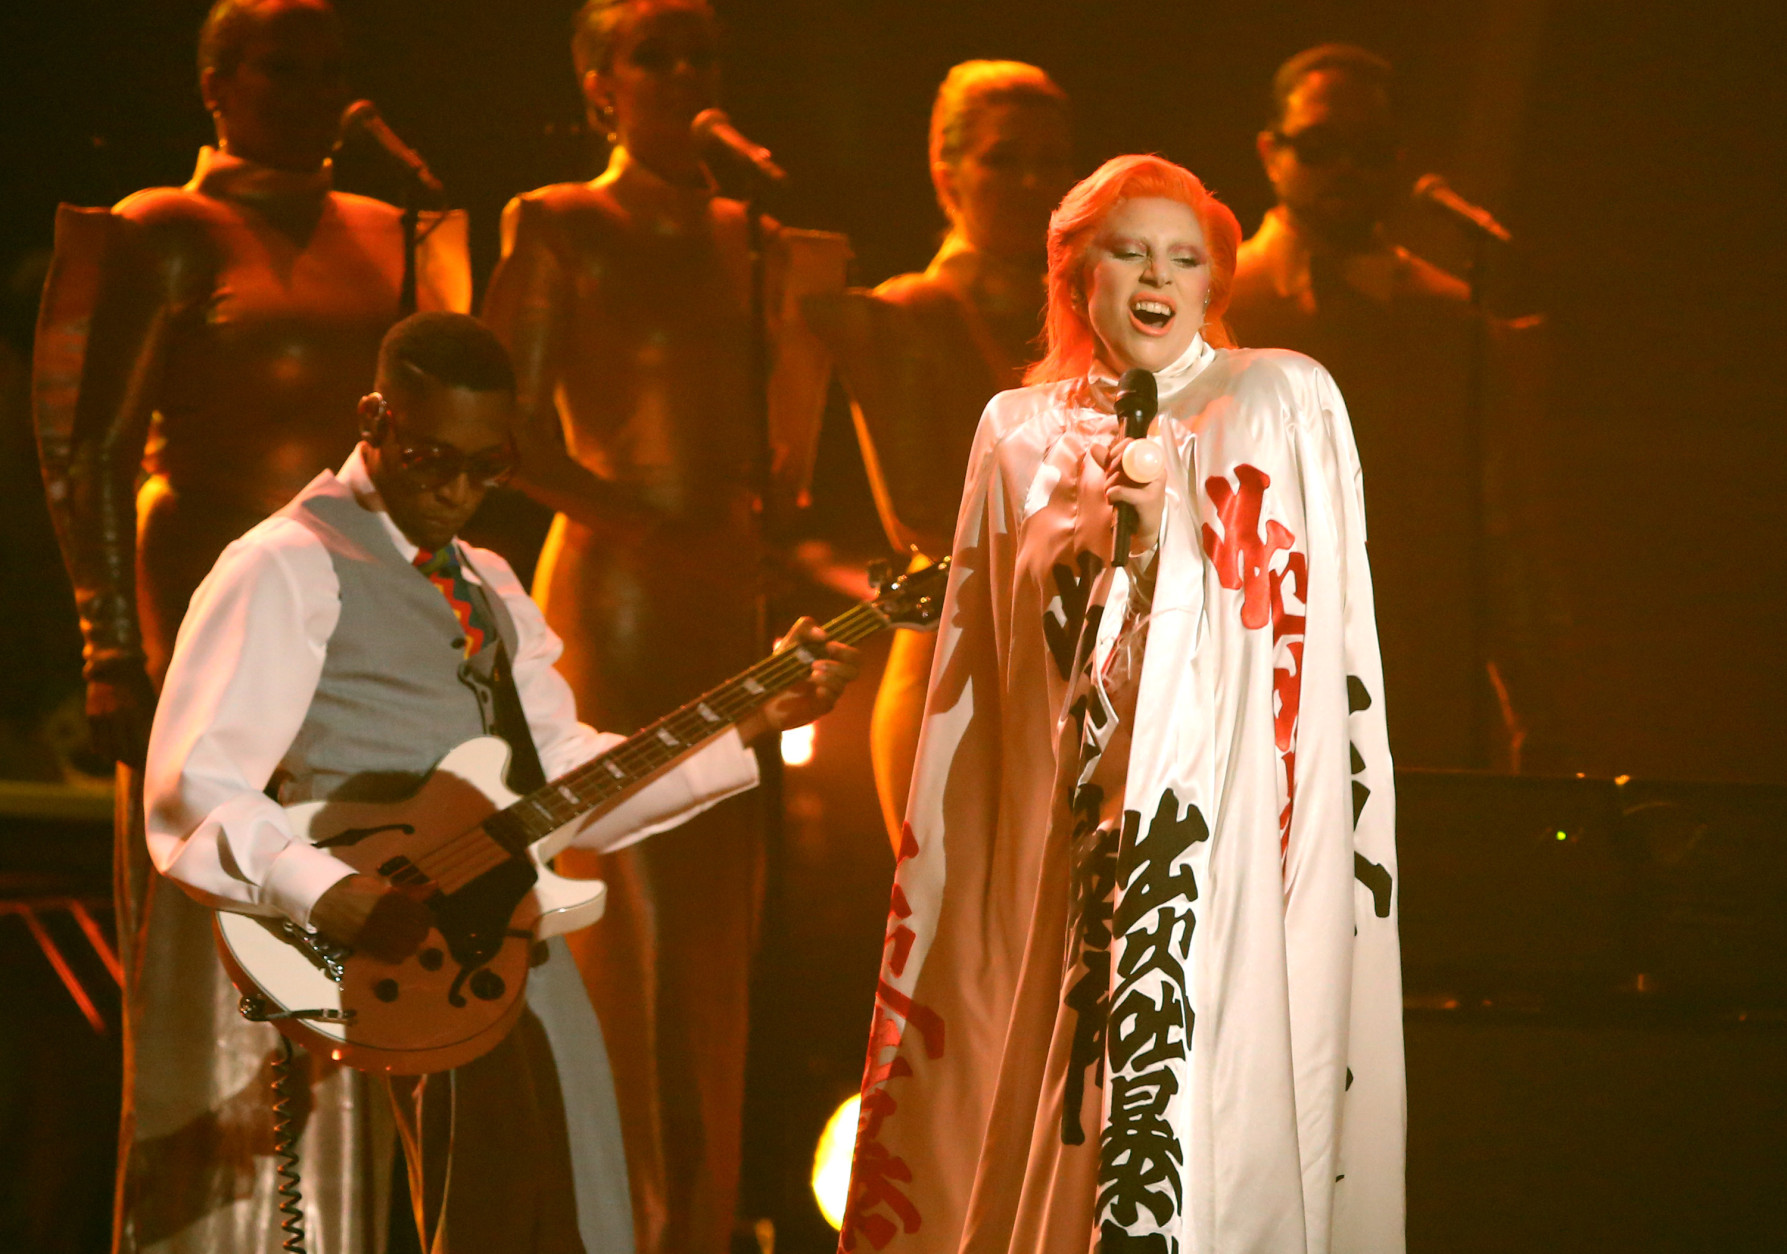 Lady Gaga performs a tribute to David Bowie at the 58th annual Grammy Awards on Monday, Feb. 15, 2016, in Los Angeles. (Photo by Matt Sayles/Invision/AP)